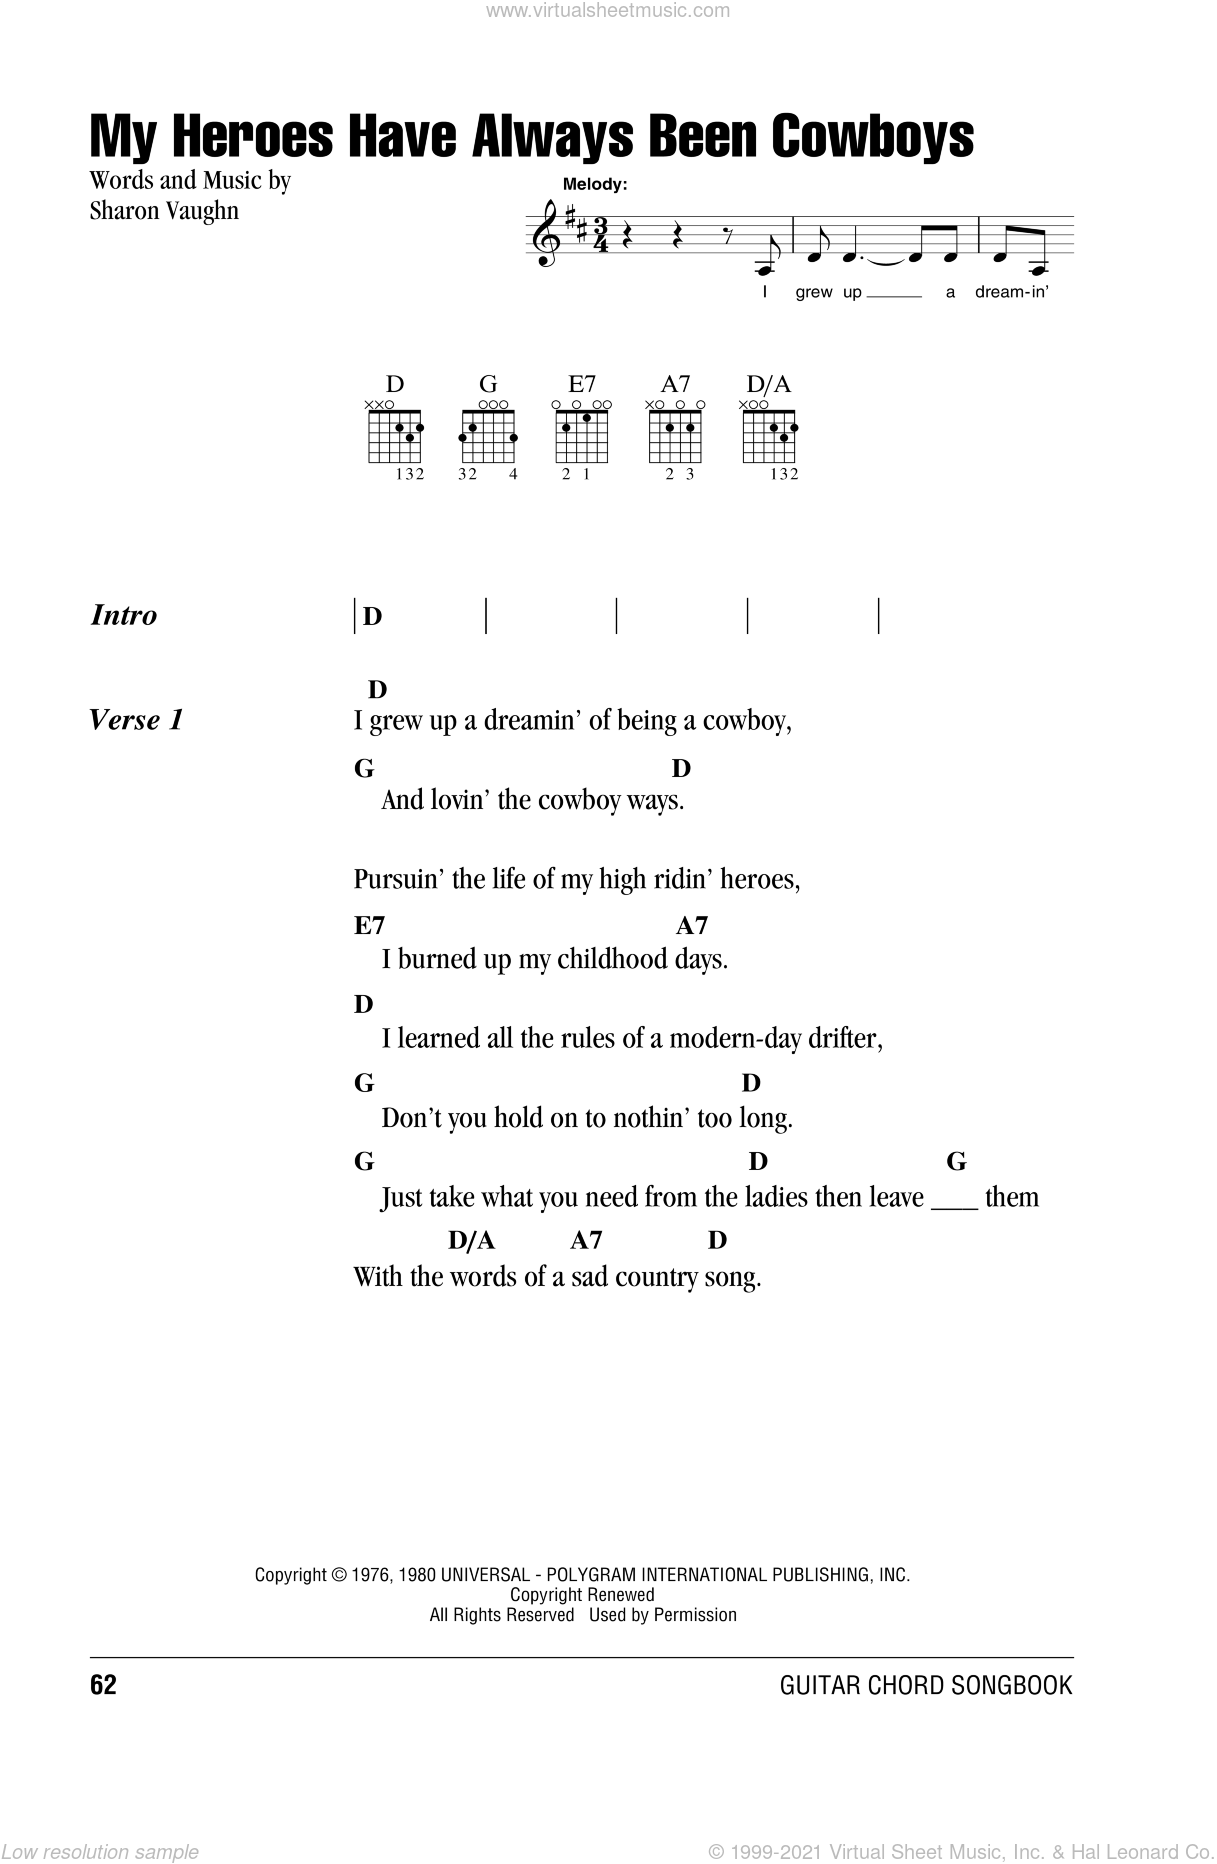 My Heroes Have Always Been Cowboys sheet music for guitar (chords) by Willie Nelson and Sharon Vaughn, intermediate skill level